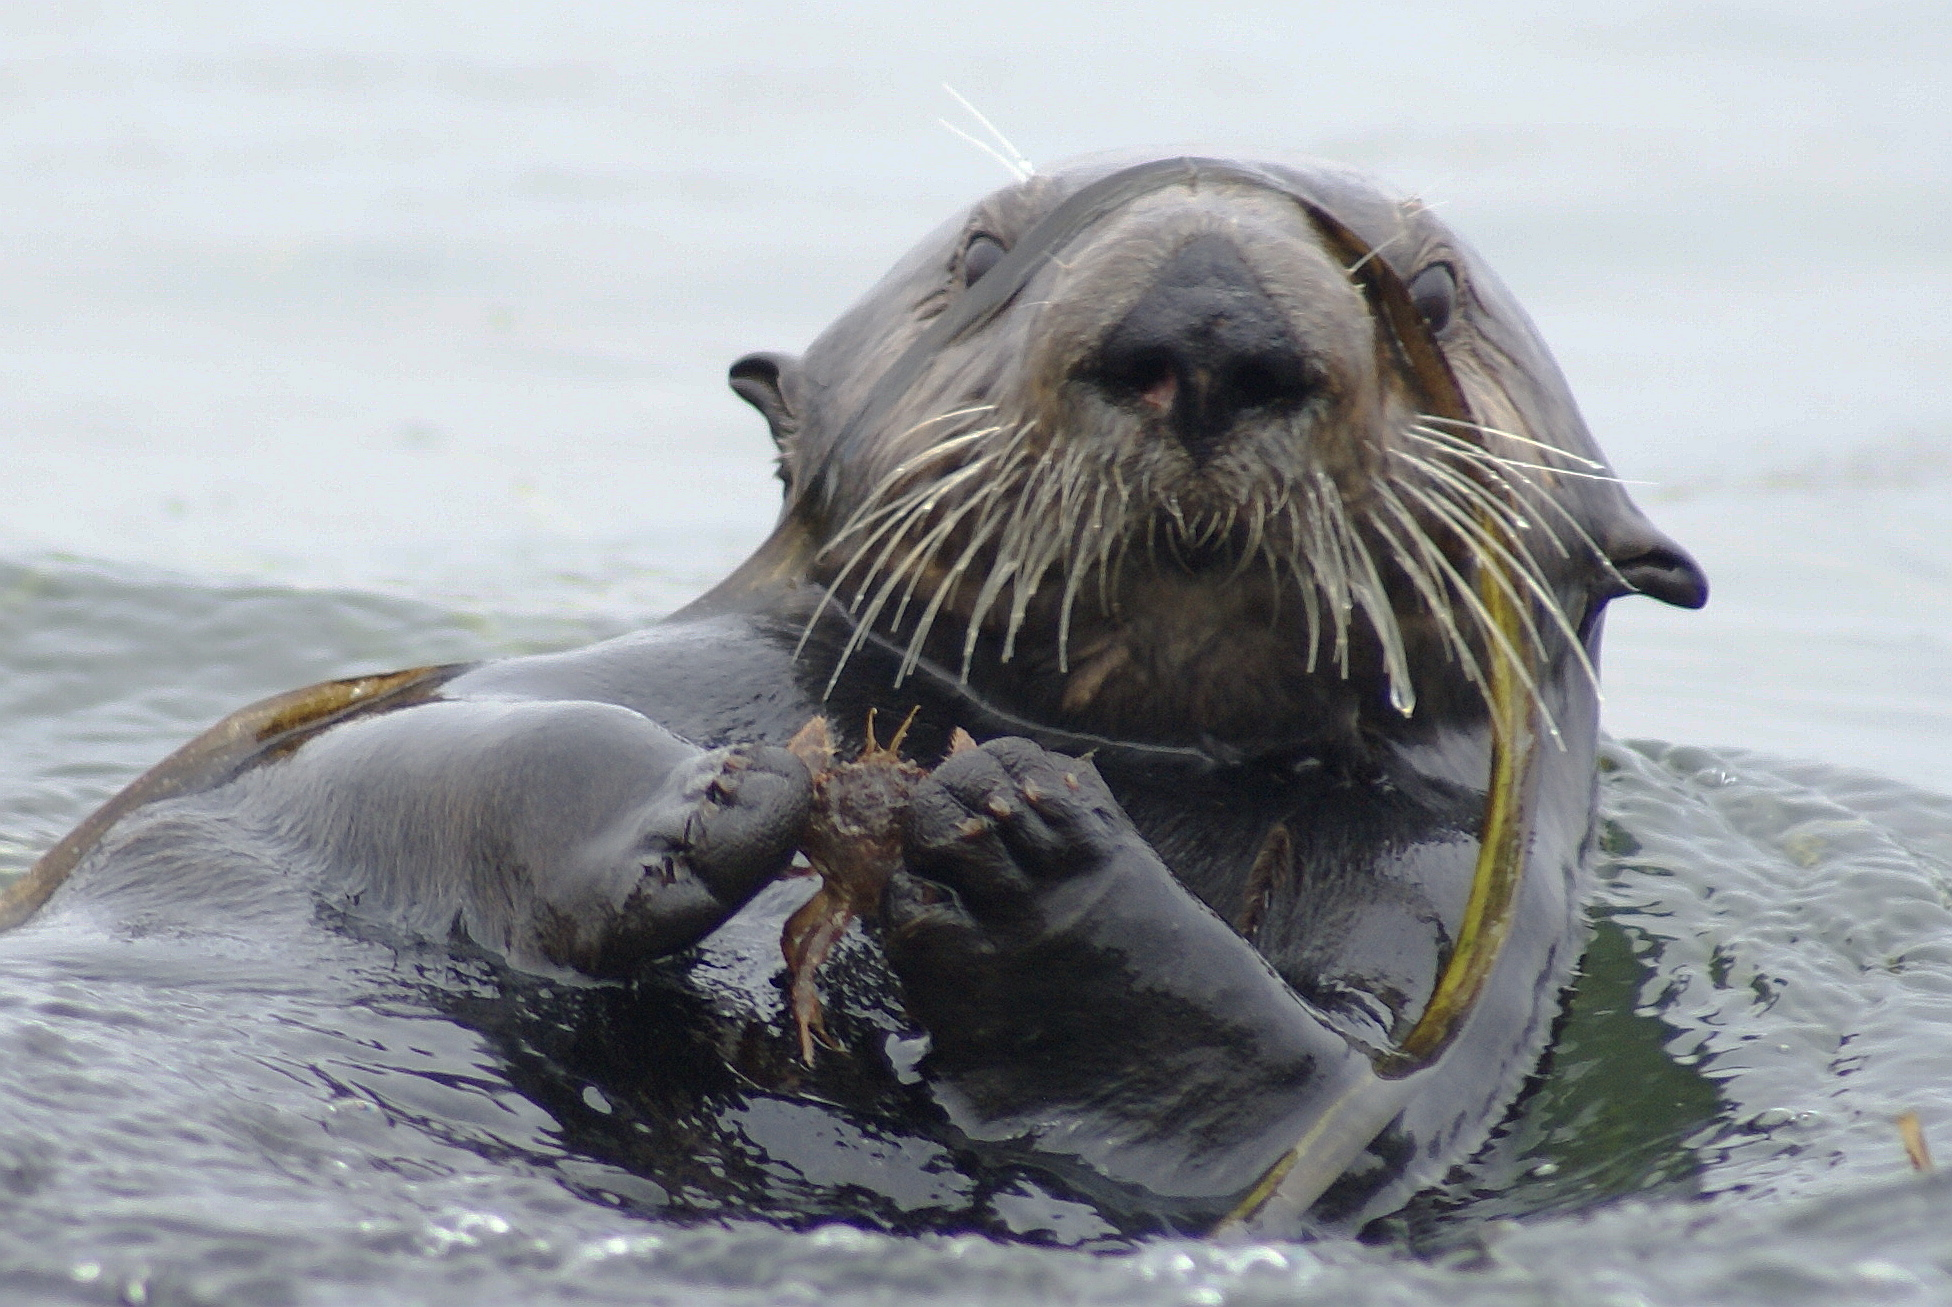 Saving sea otters: Your call to action